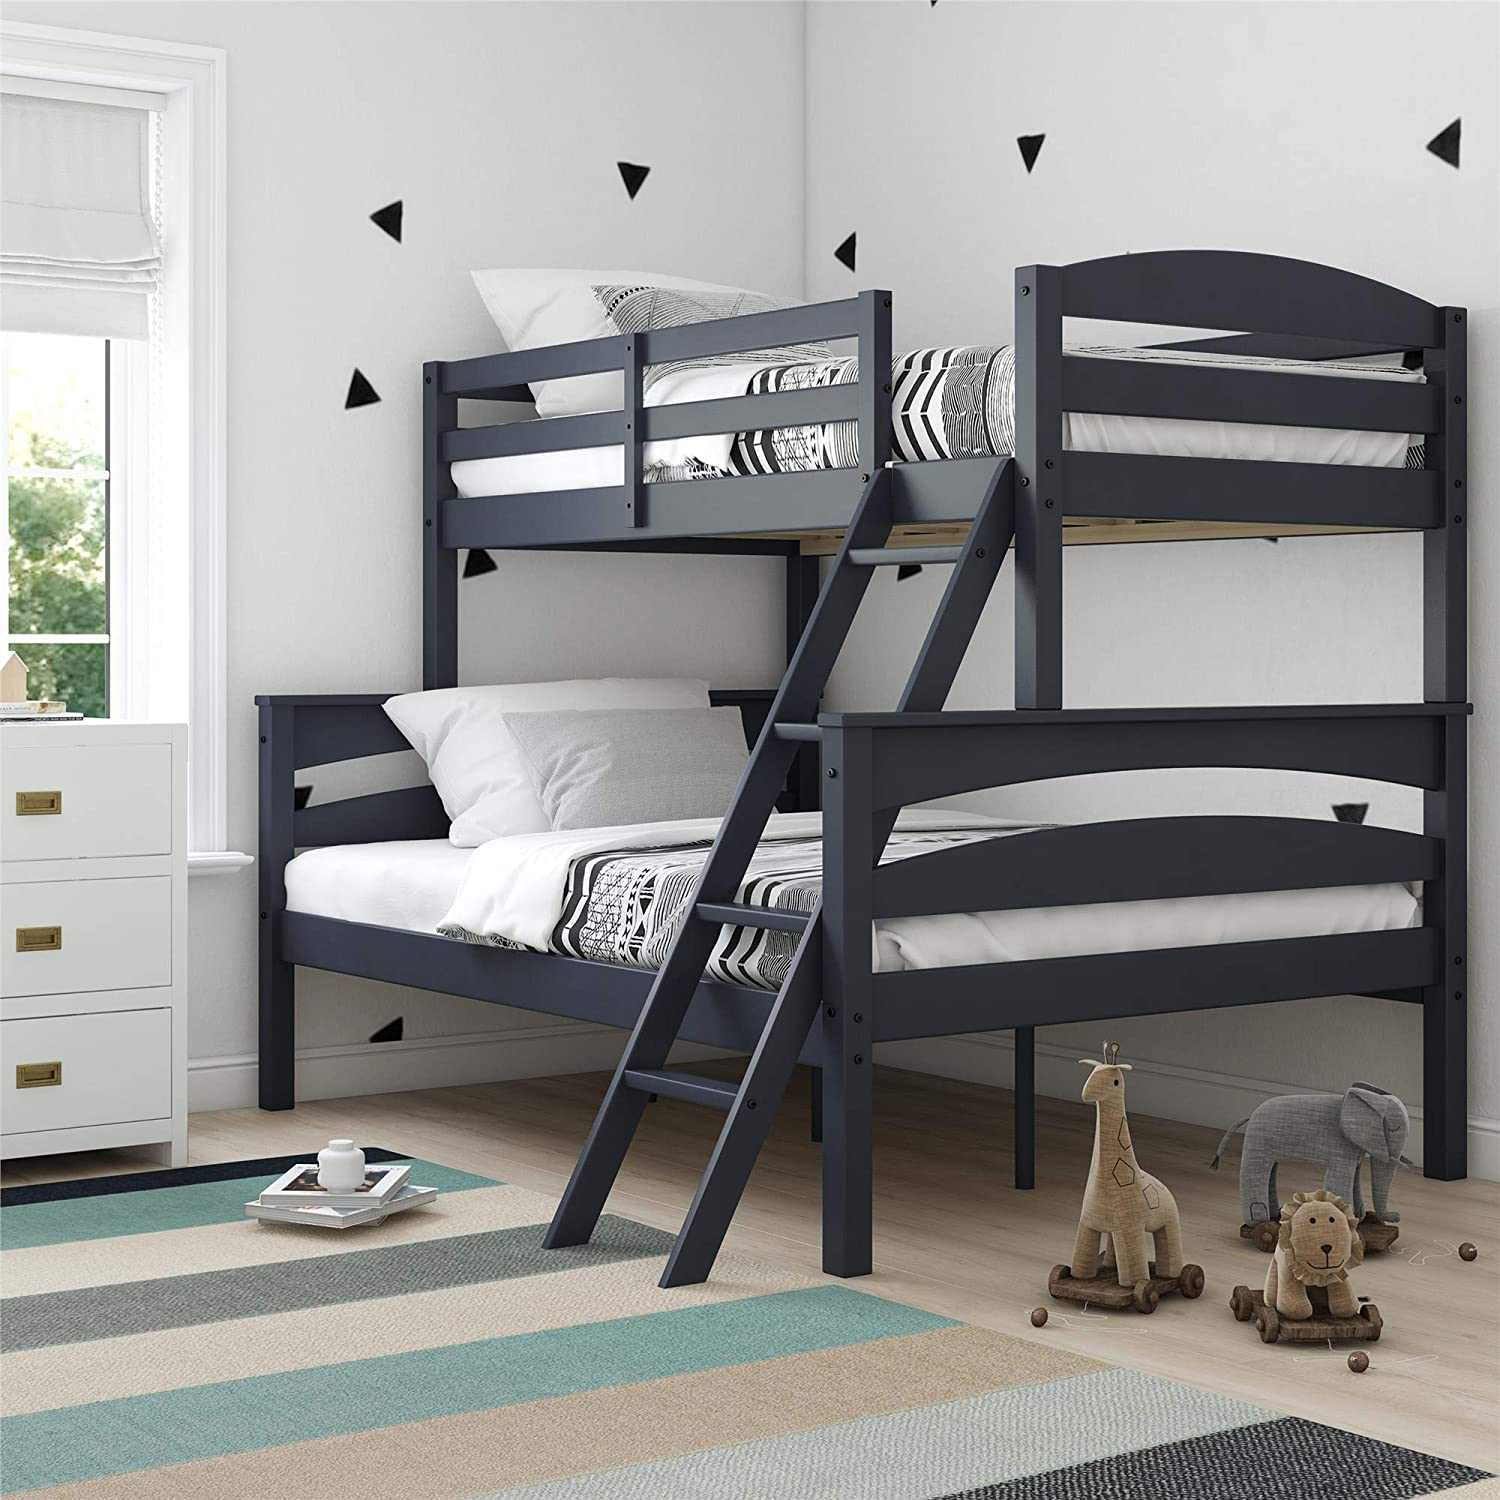 Dorel Living Brady Solid Wood Bunk Beds with Ladder